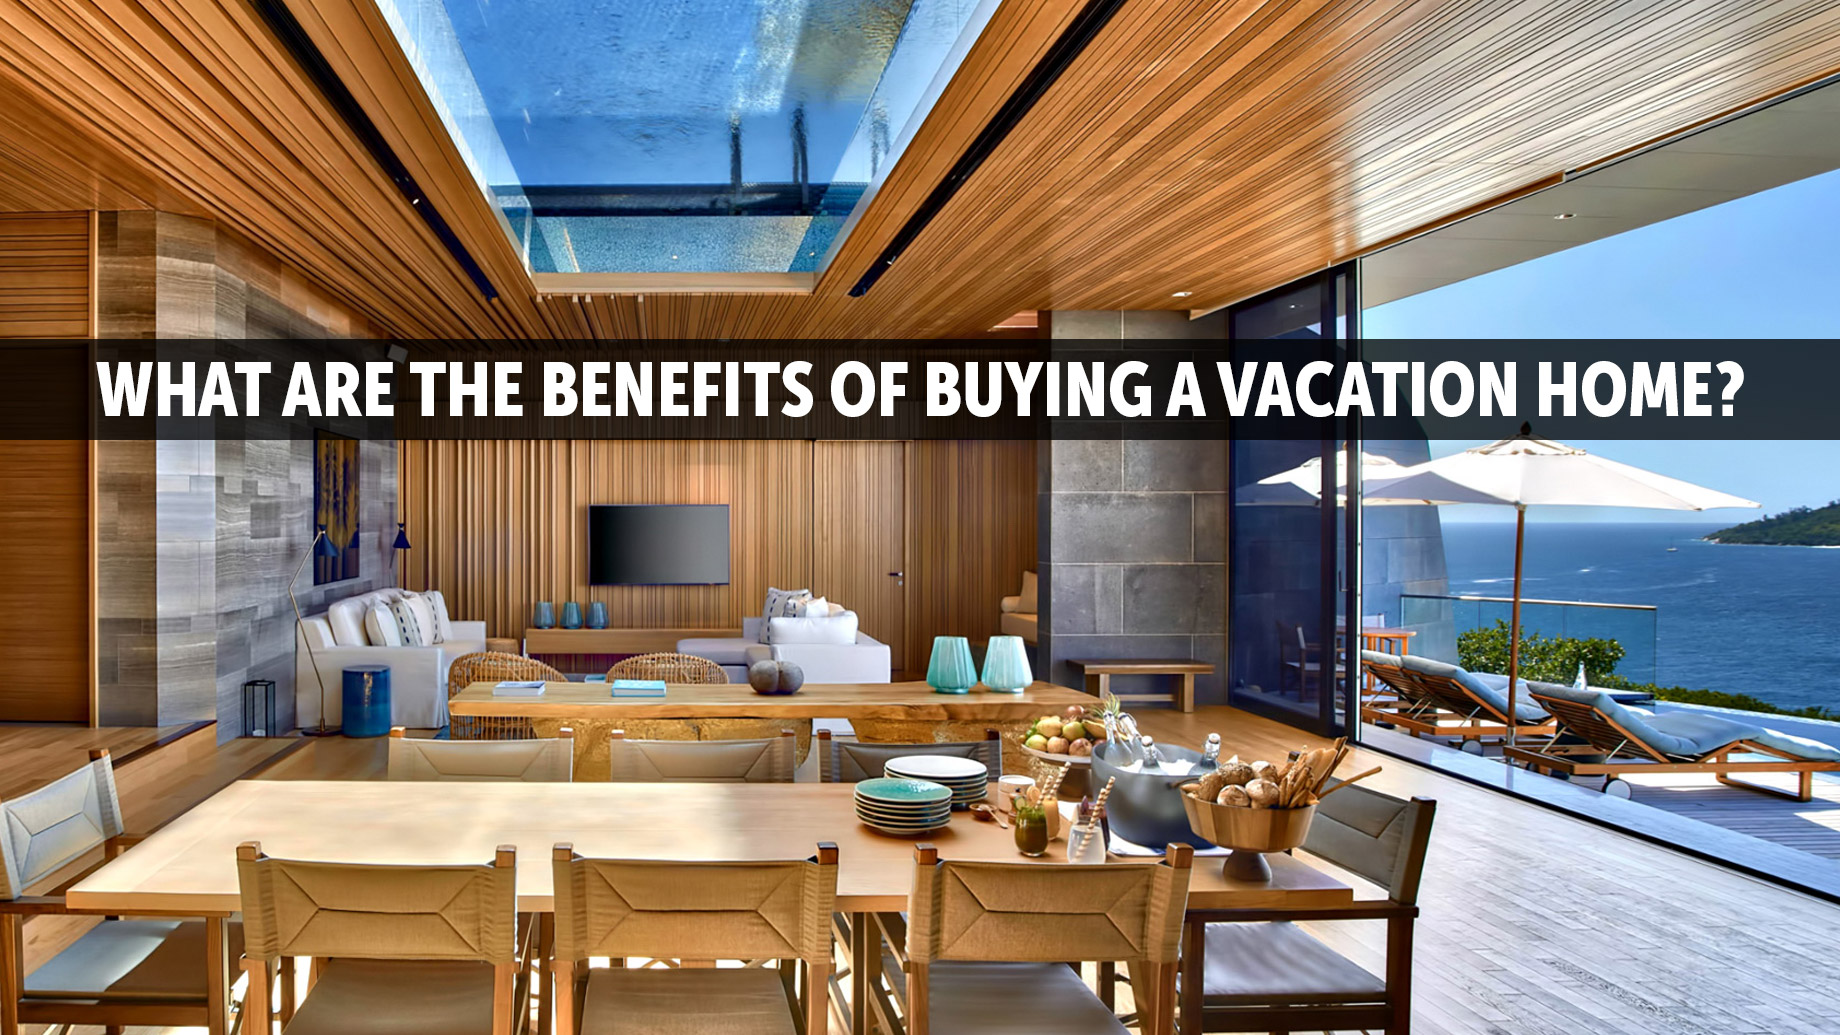 What Are The Benefits Of Buying A Vacation Home?